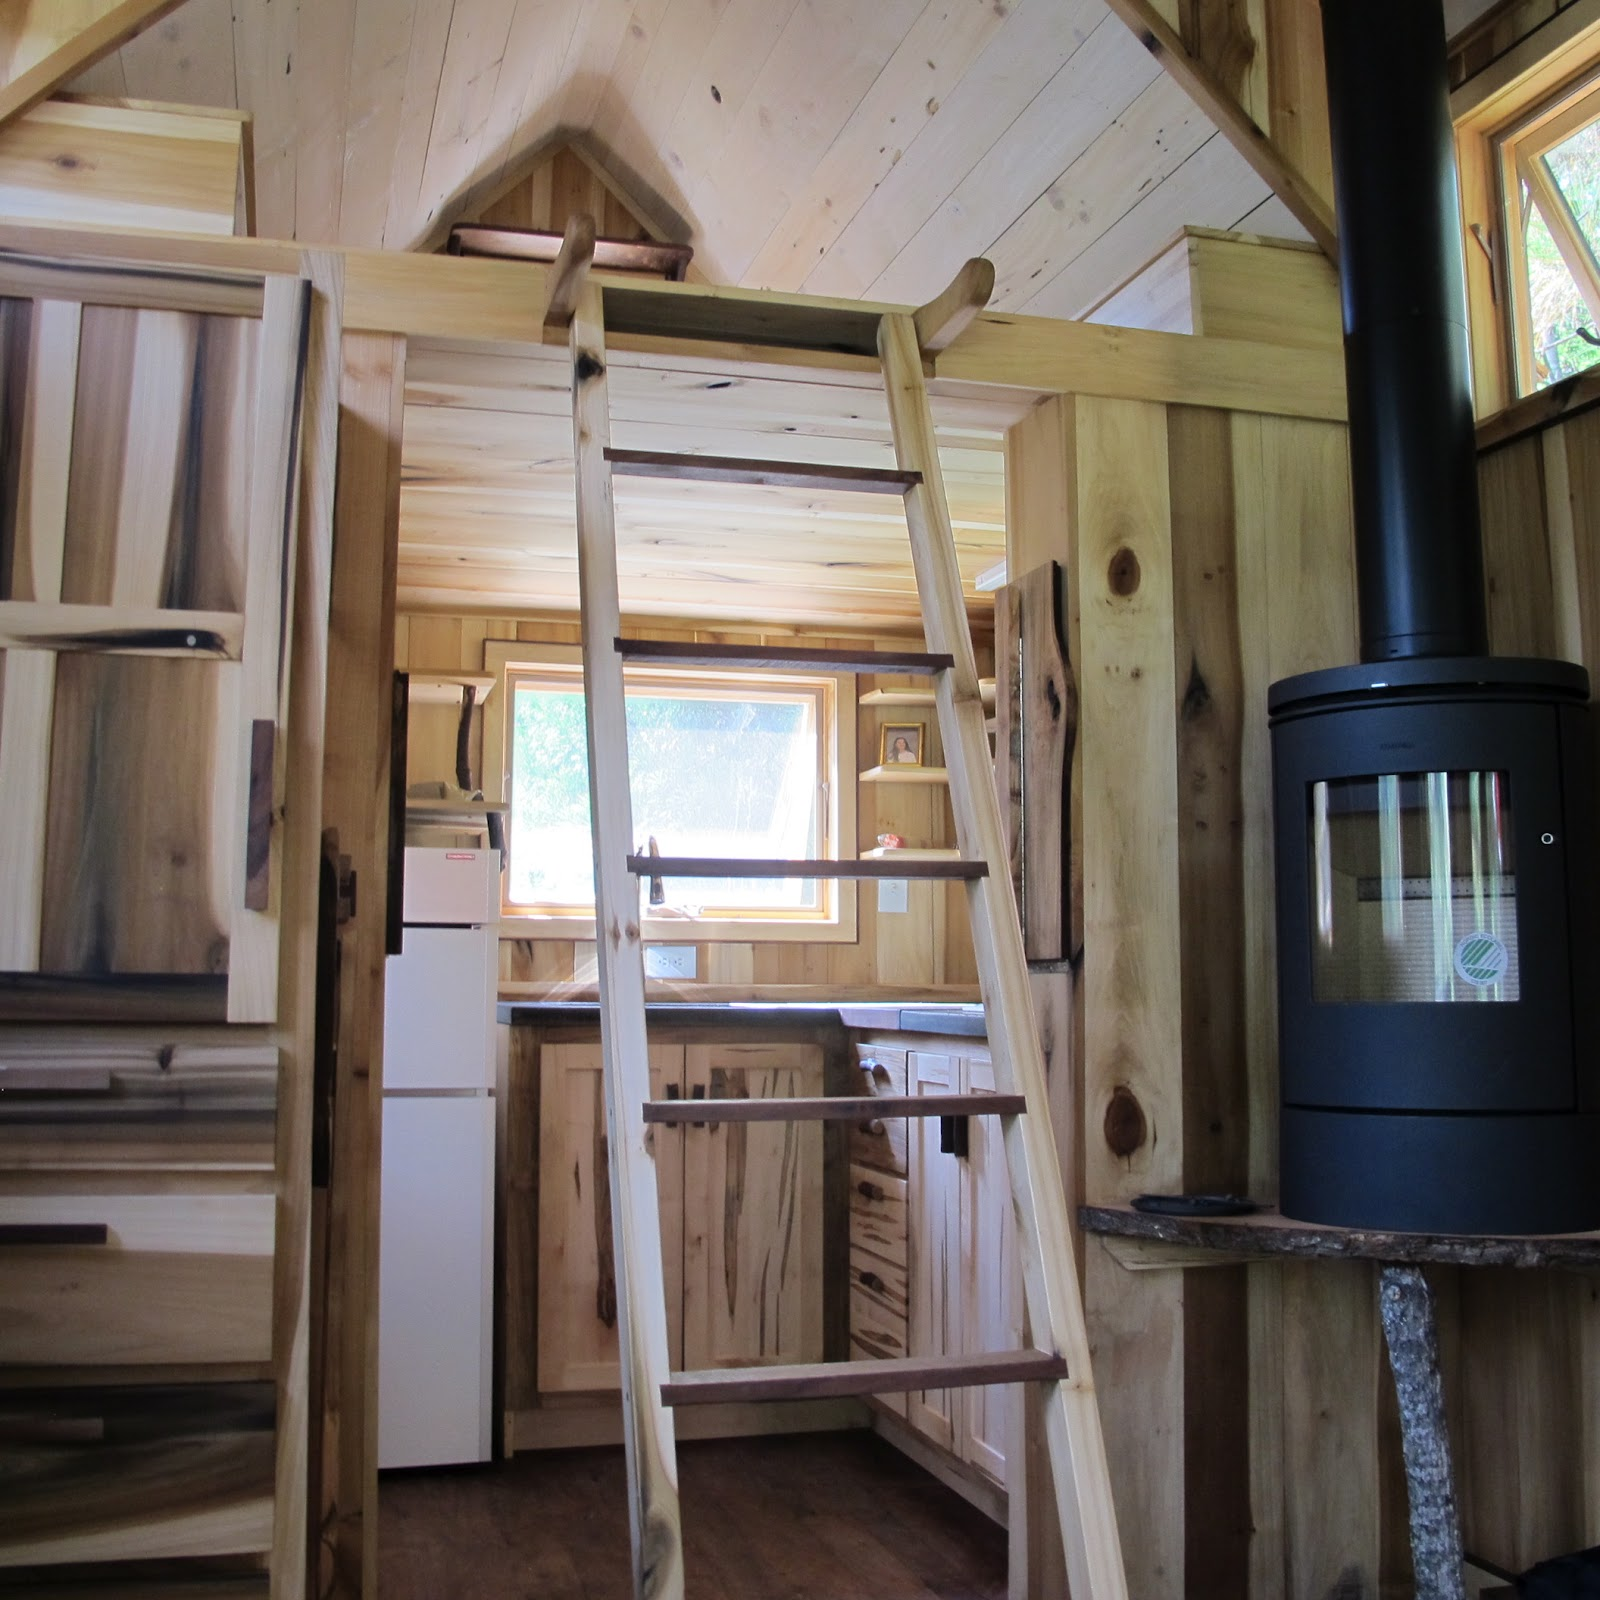 Owl creek happenings tumbleweed traveling - Tumbleweed tiny house interior ...